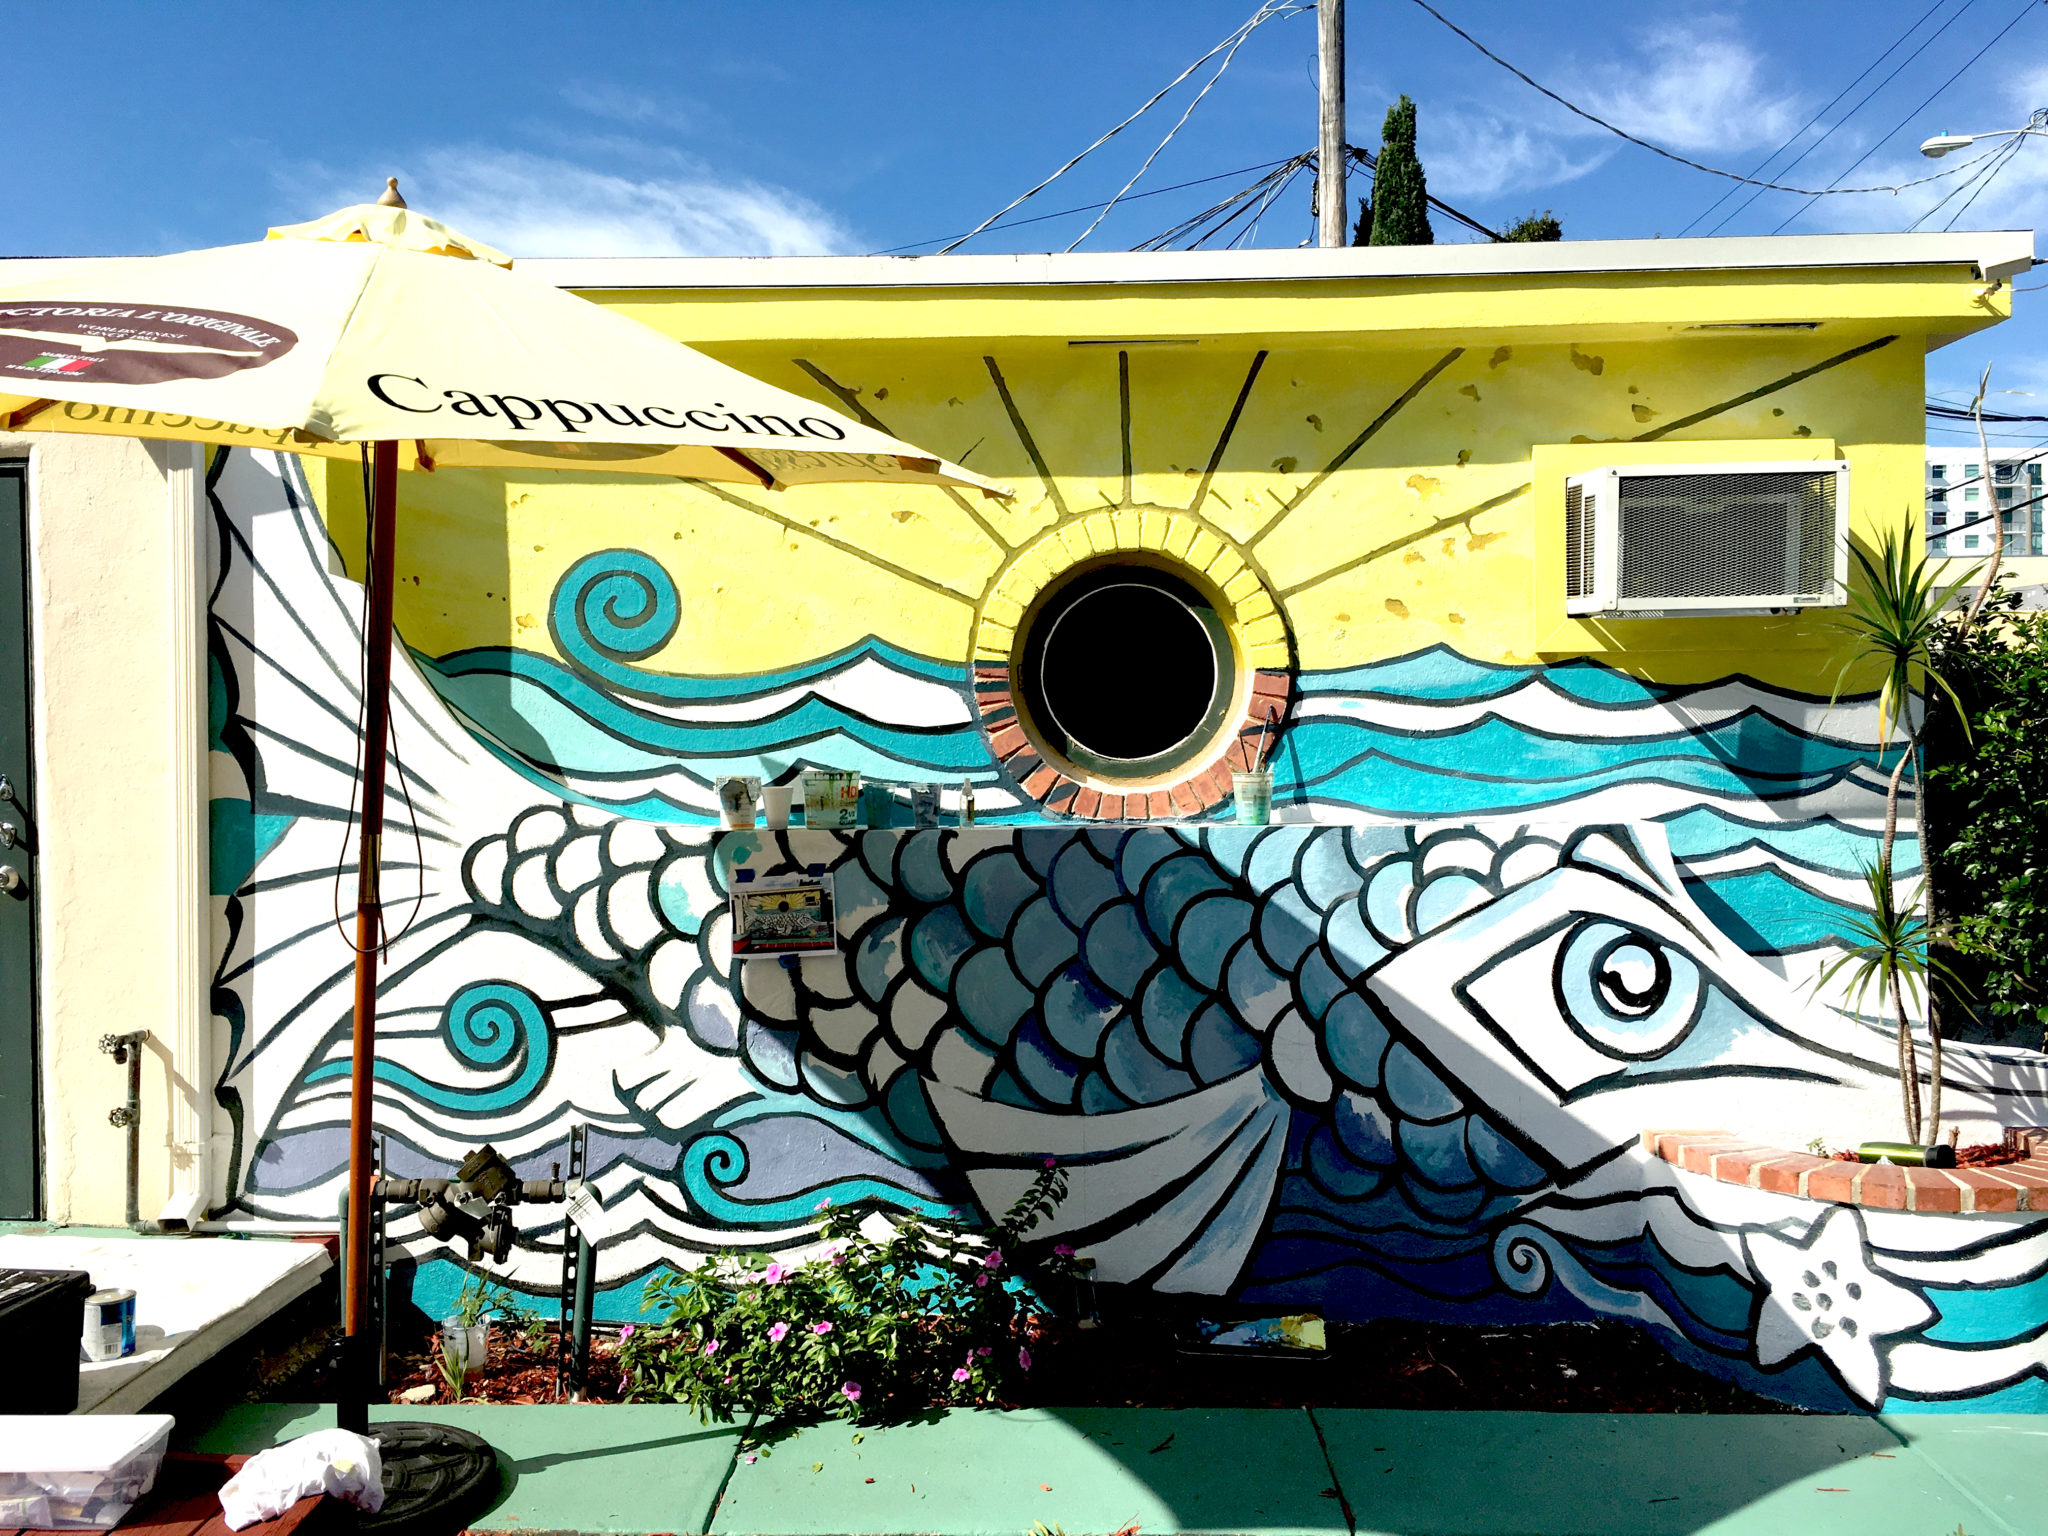 Art deco public mural fish story 6 mural detail outdoor for Downtown hollywood mural project